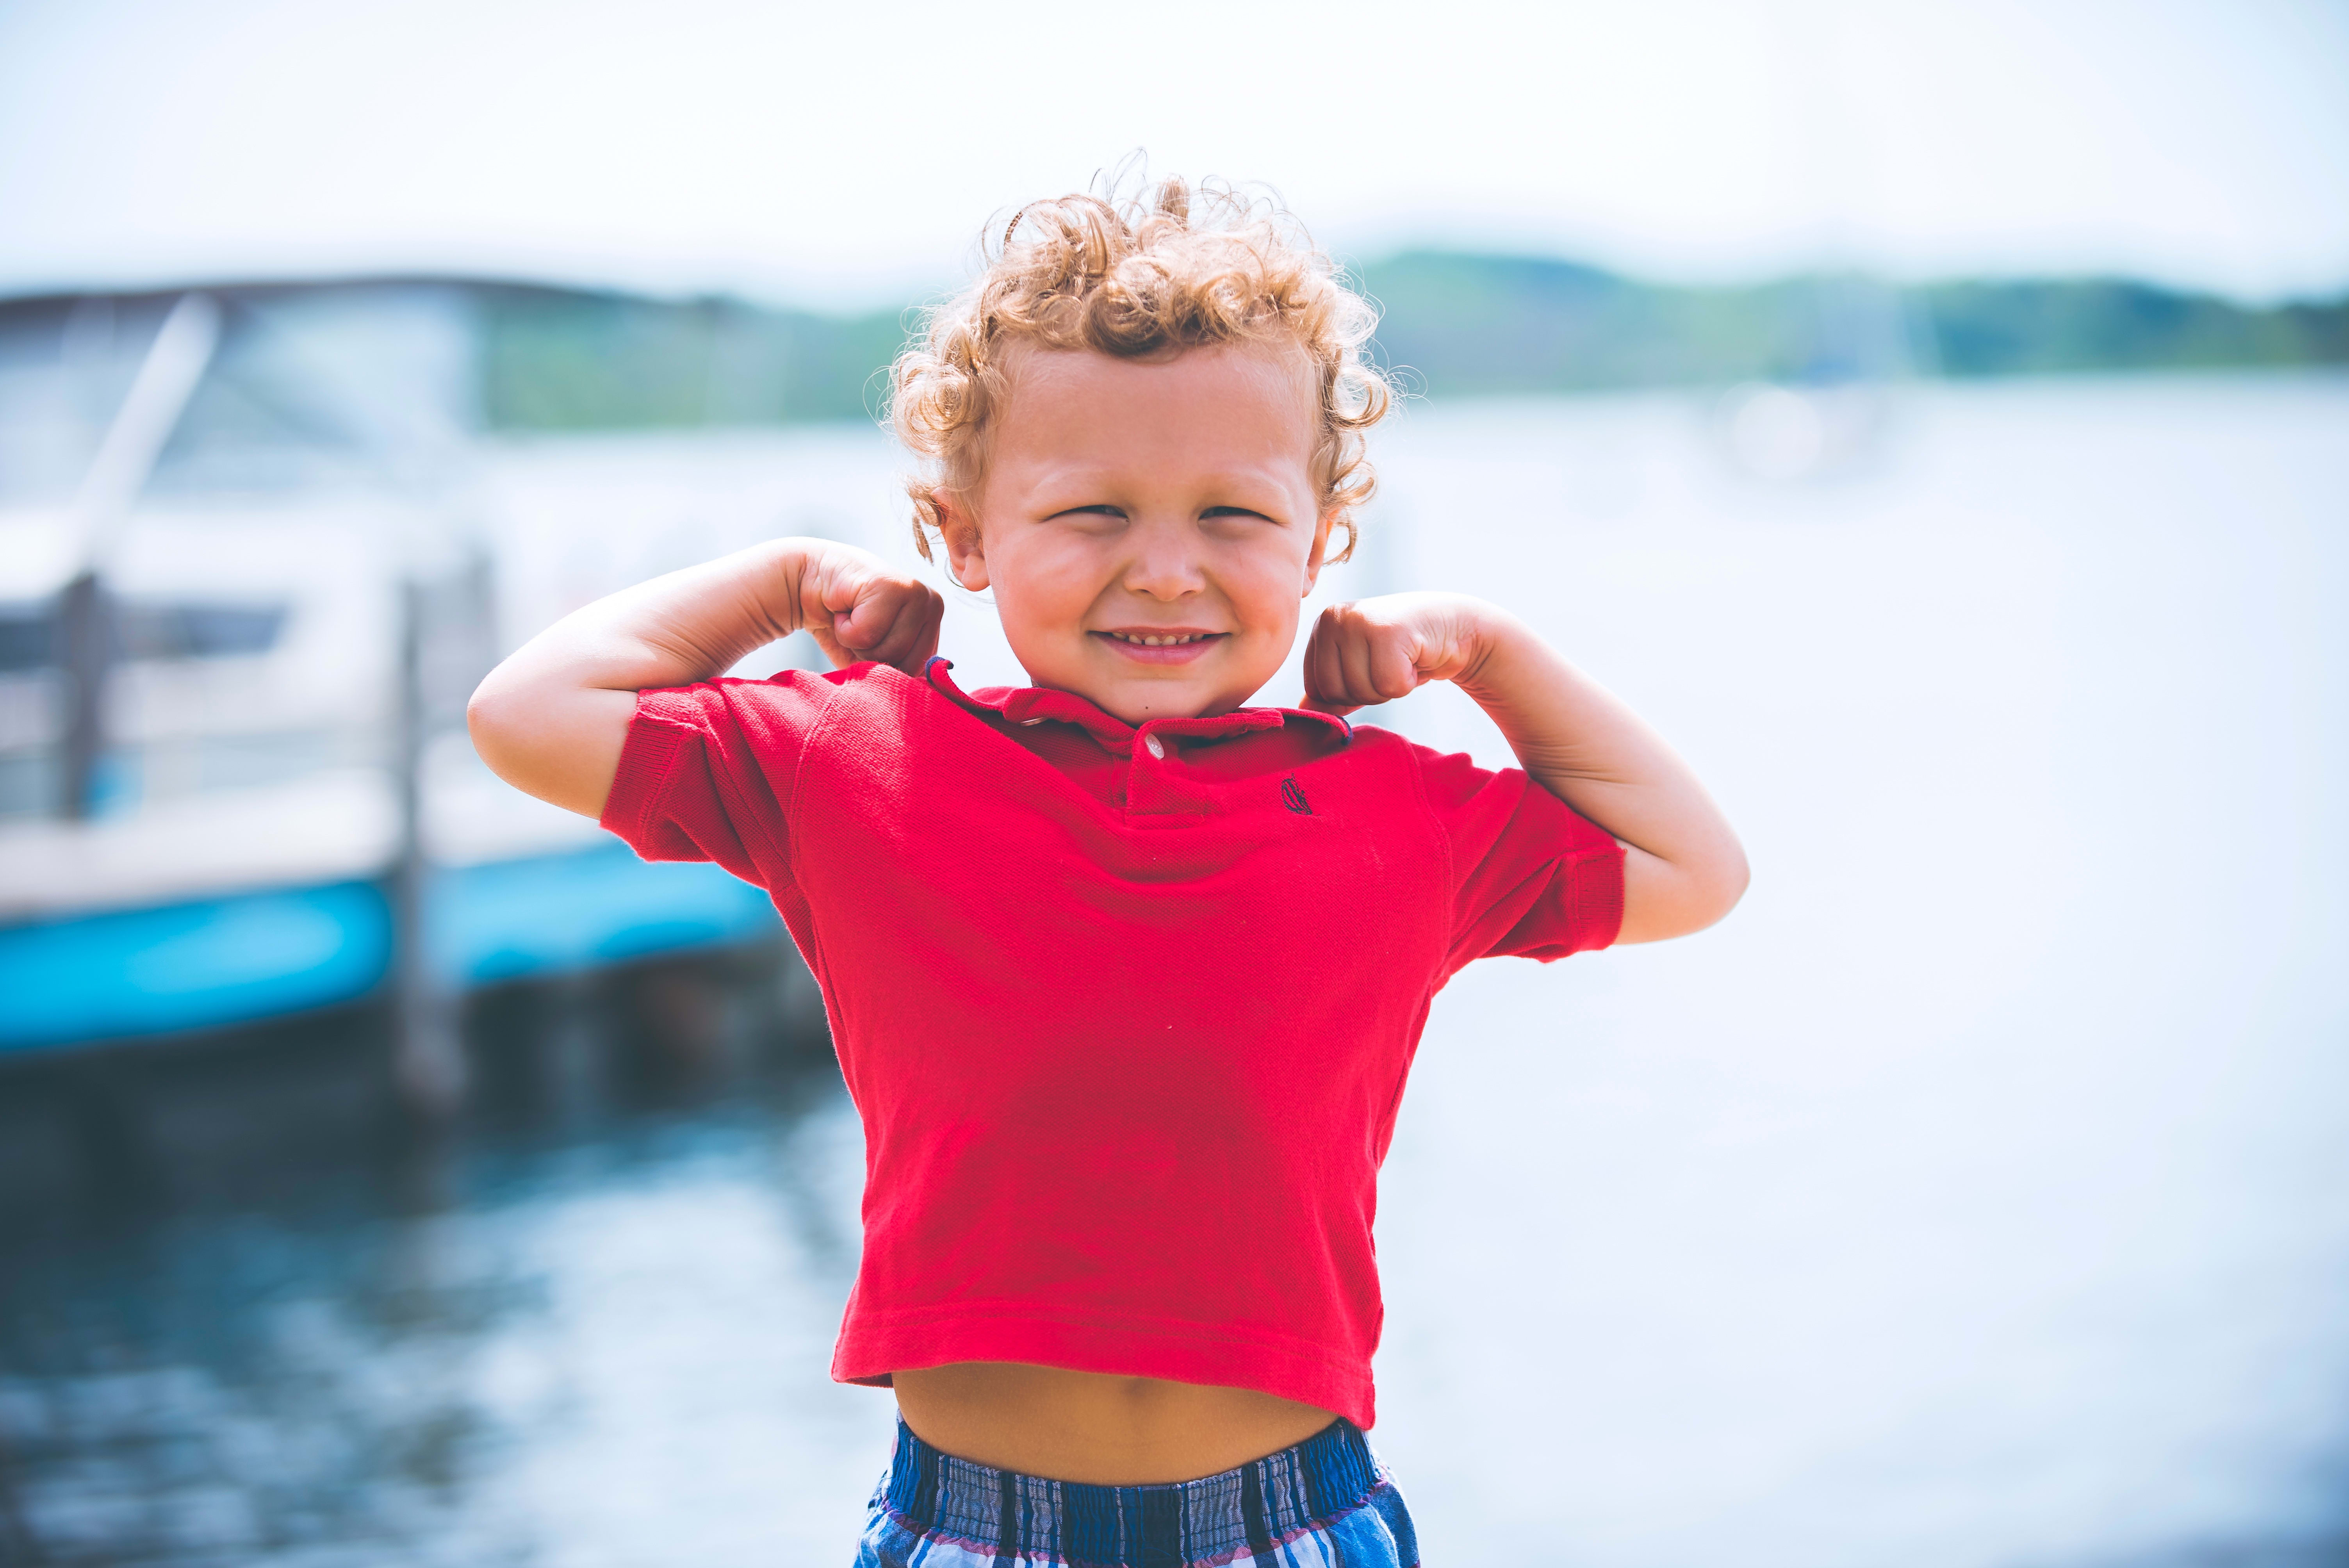 Young boy flexing arms